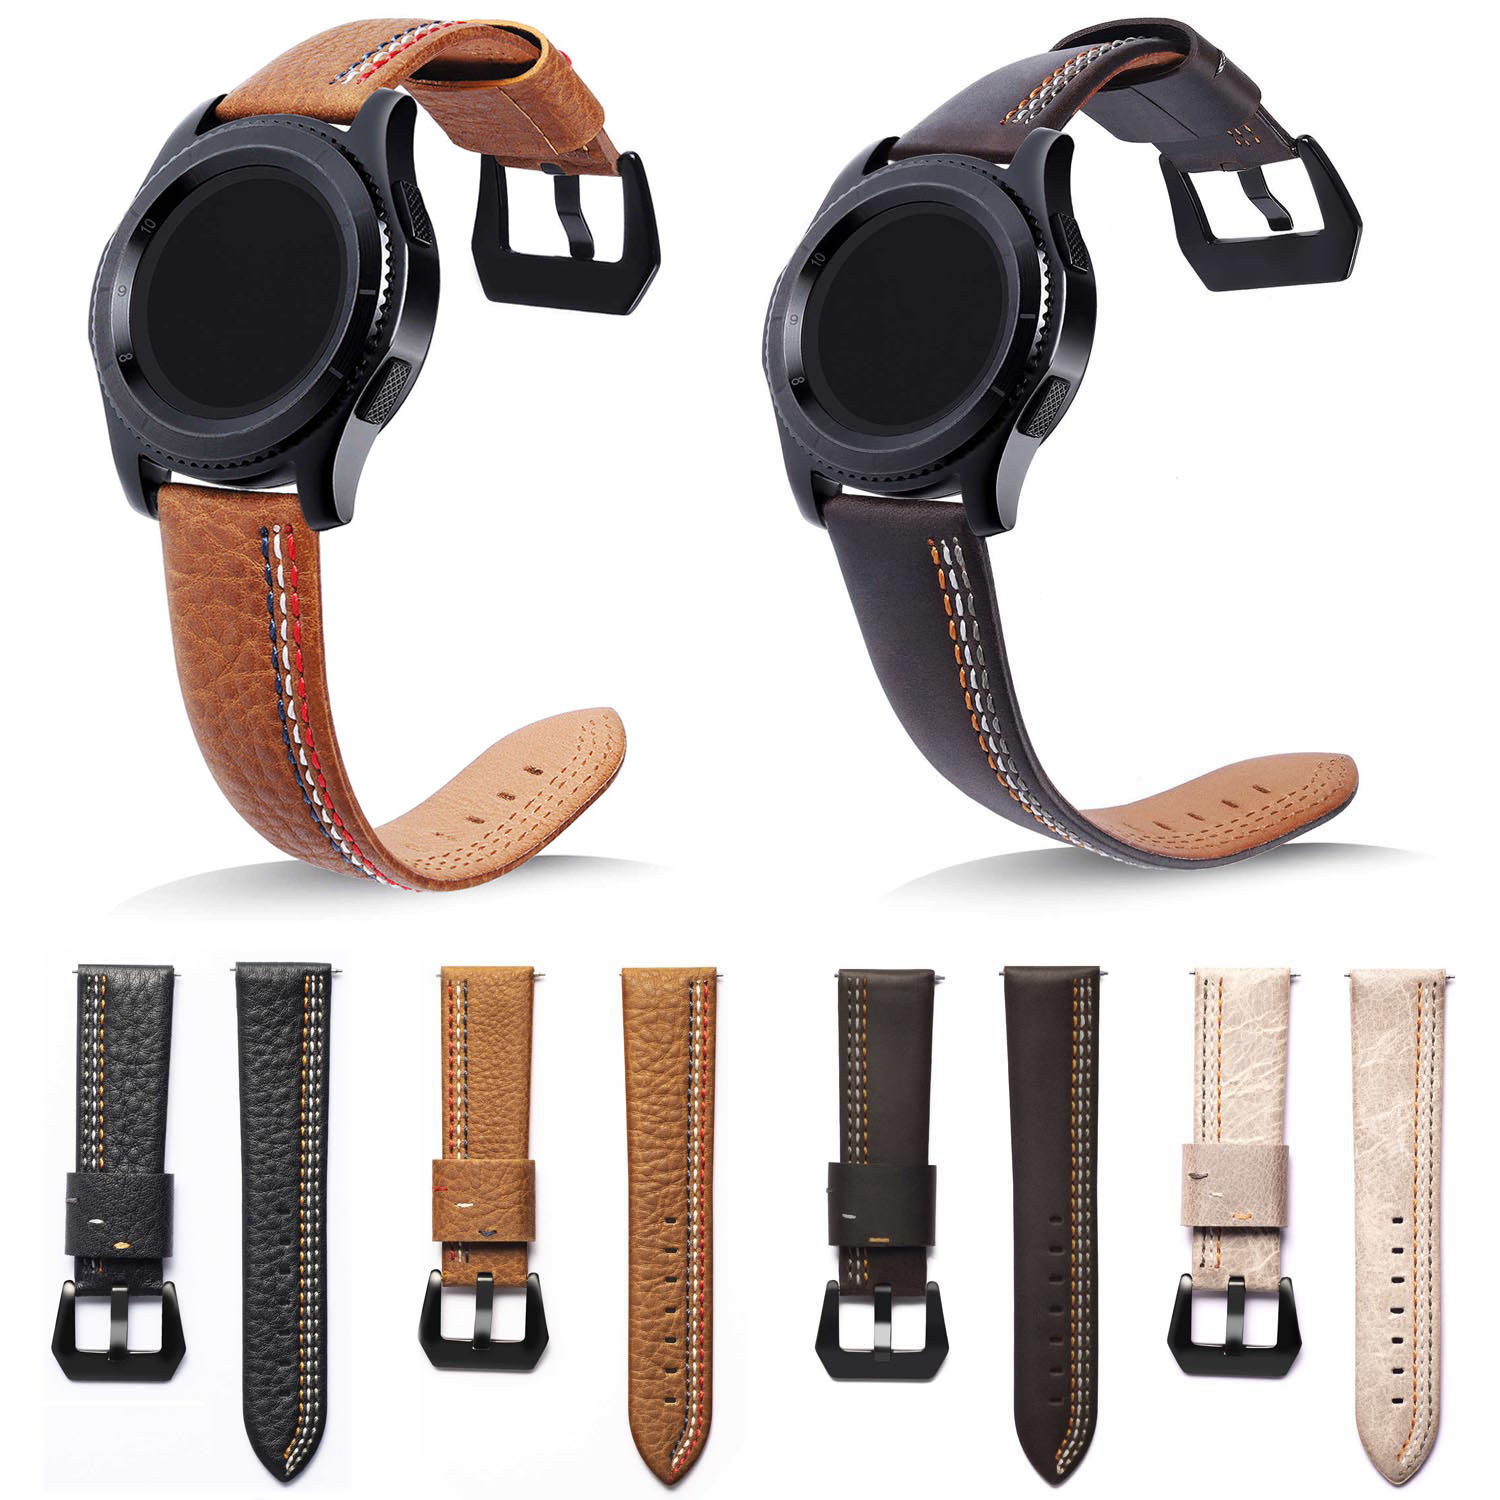 Retro Genuine Classic Leather Strap For Samsung Gear S3 Band Frontier Strap For Gear S3 Classic Watchband 22mm Watch Bracelet 22mm quick release genuine leather watchband for samsung gear s3 classic frontier watch band vintage wrist strap bracelet brown